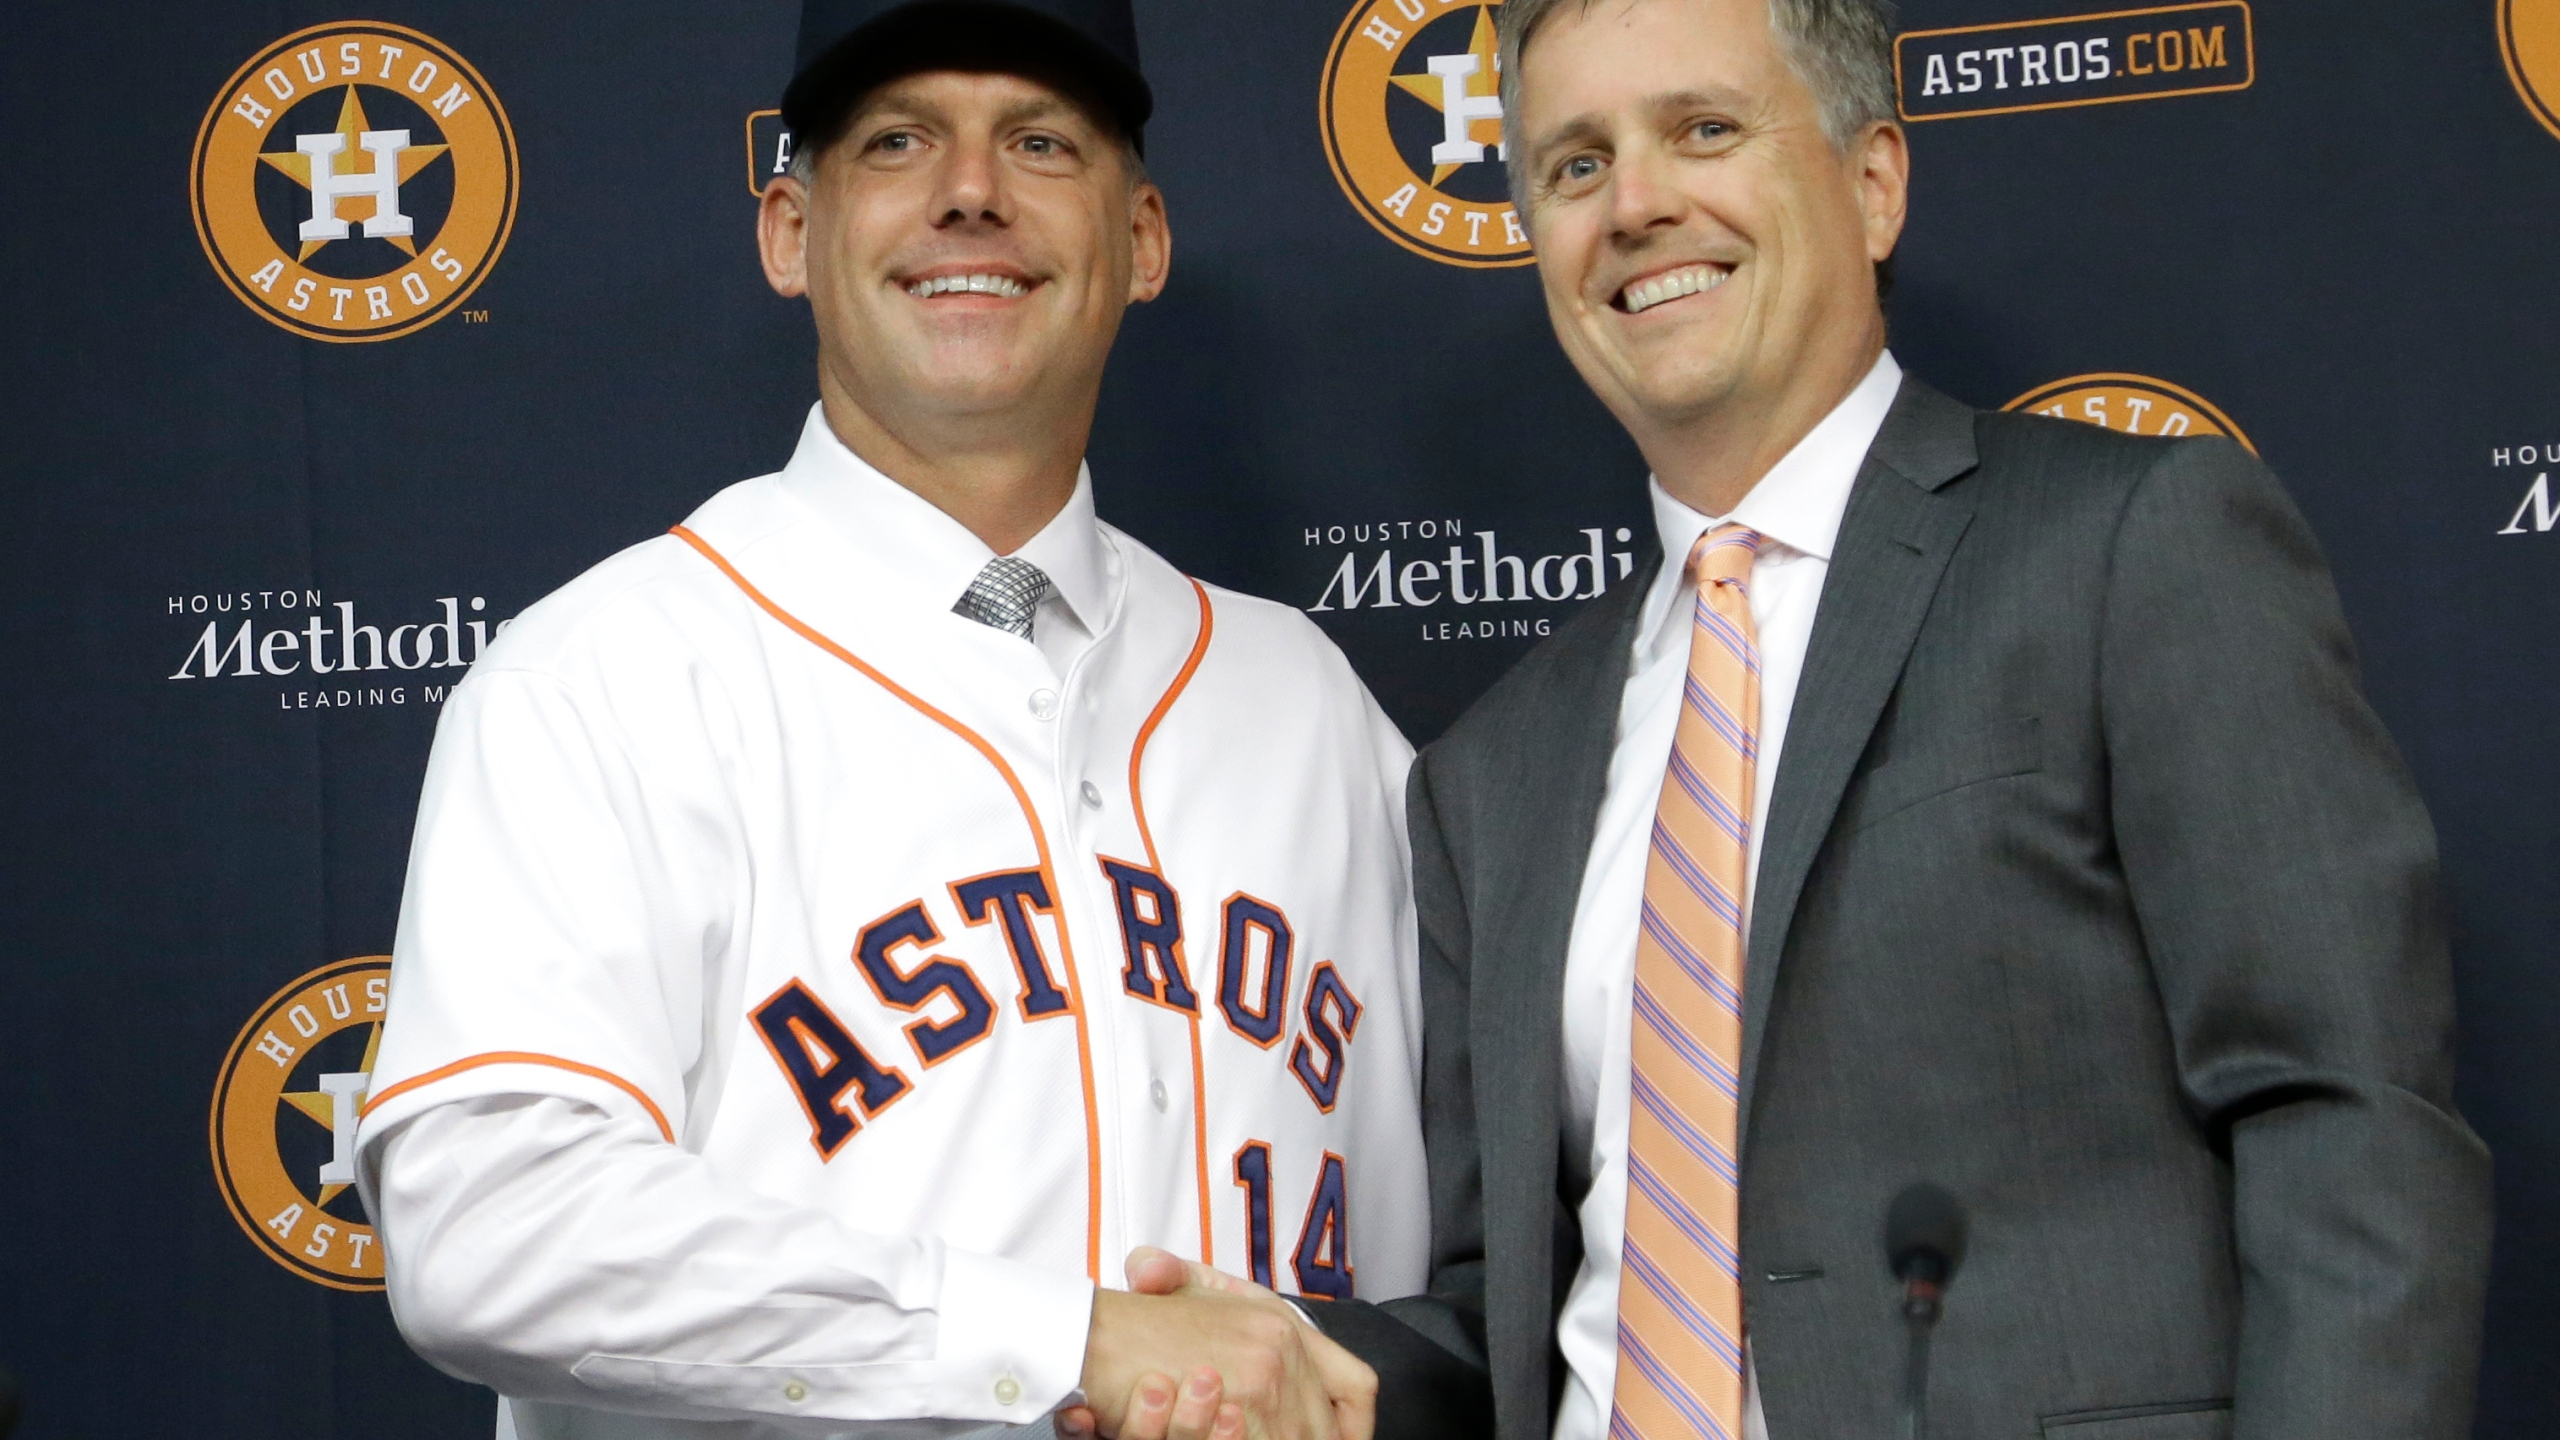 A.J. Hinch, Jeff Luhnow